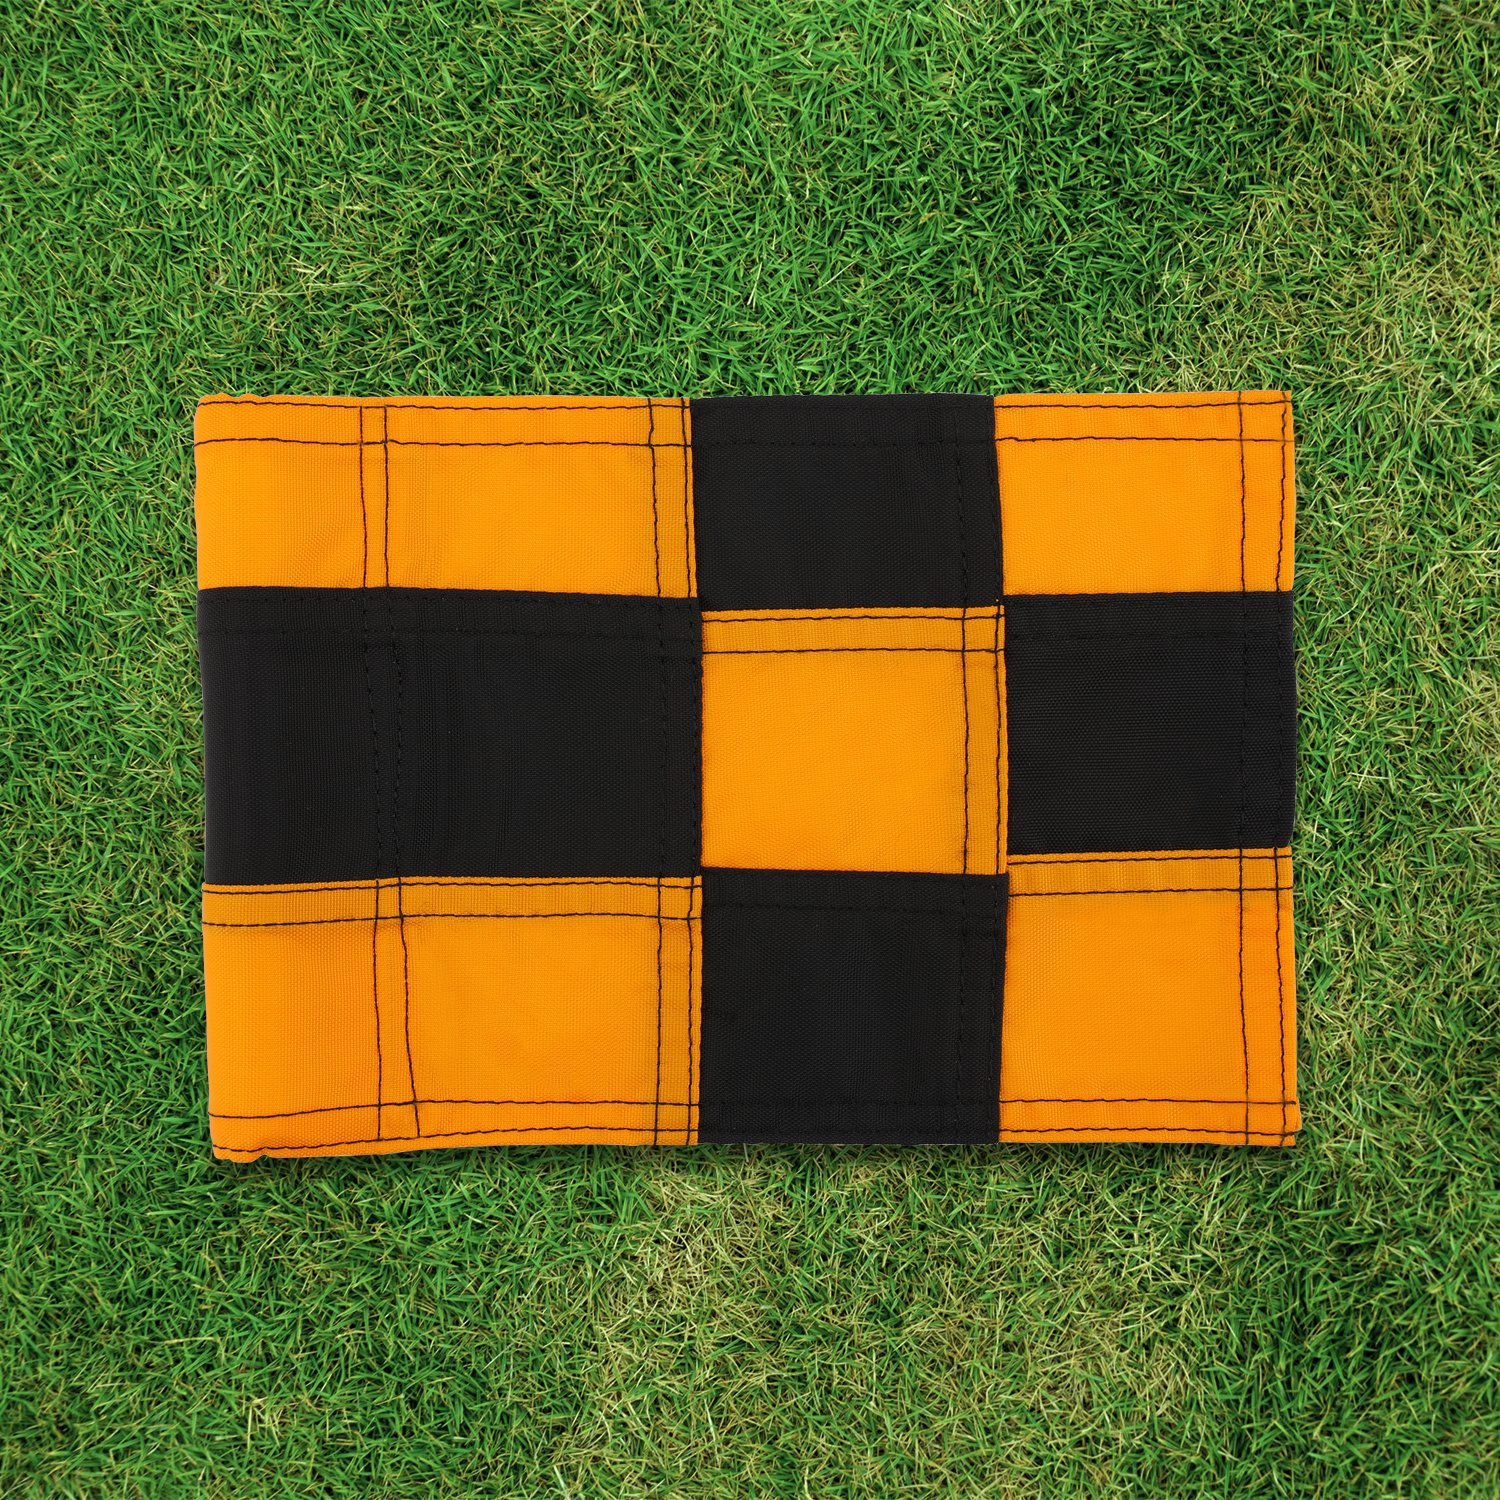 KONDAY Golf Flag,Practice Green Golf Flags, Solid Nylon and Checkered Traning Golf Putting Green Flags, Indoor Outdoor Backyard Garden Portable Golf Target flags by KONDAY (Image #4)